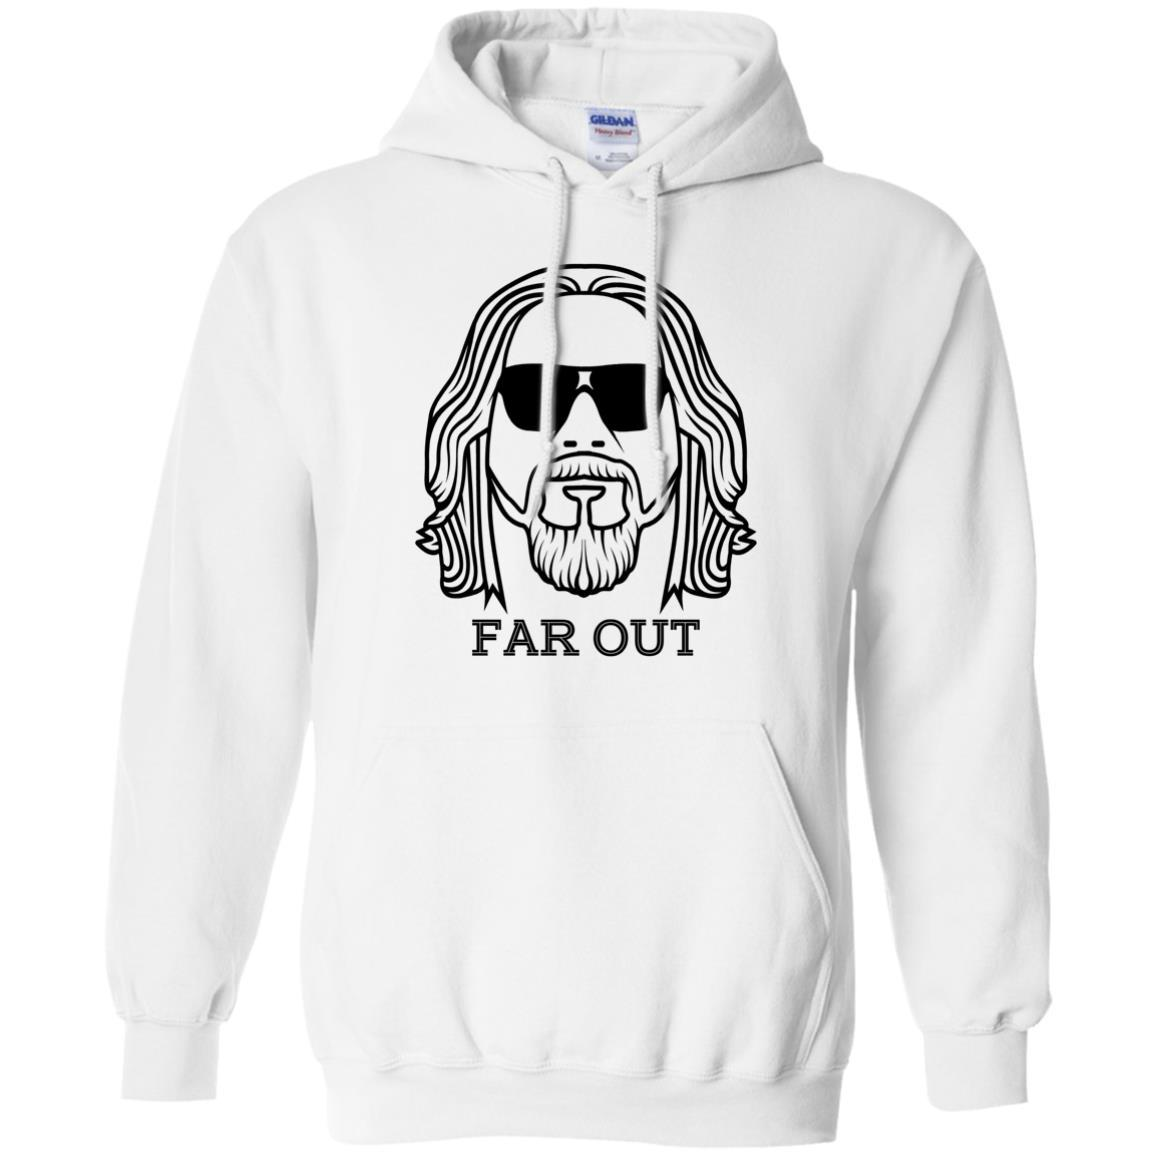 Sweatshirts - Far Out Hoodie